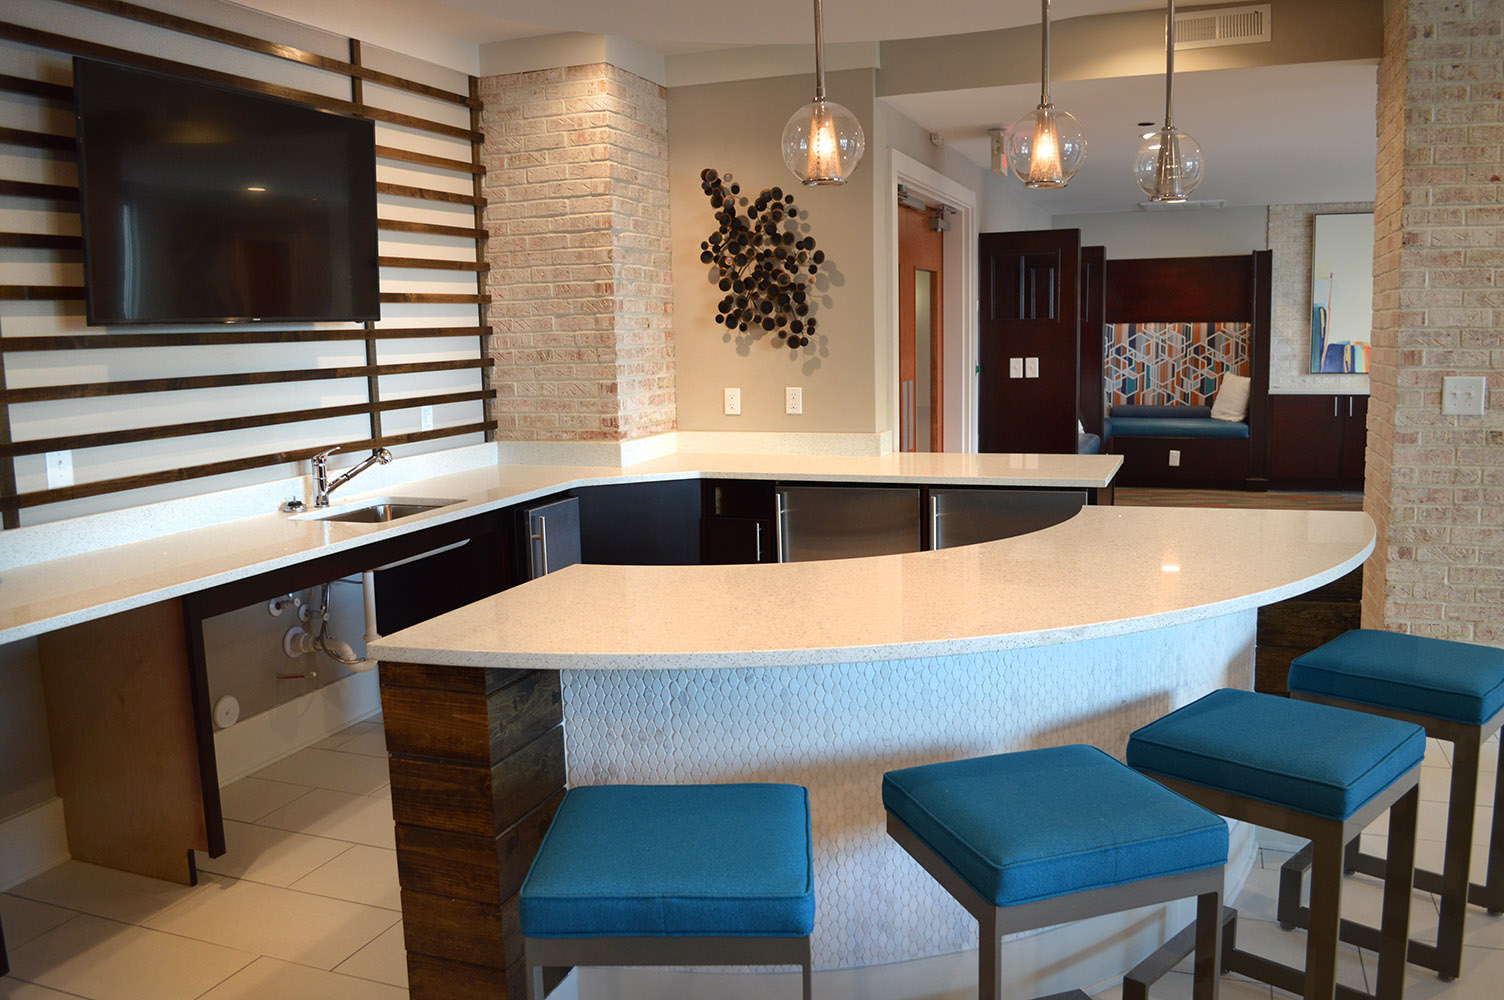 A perfect gathering area brought together by White quartz countertops and a beautiful tile bar front in the Link's commons area